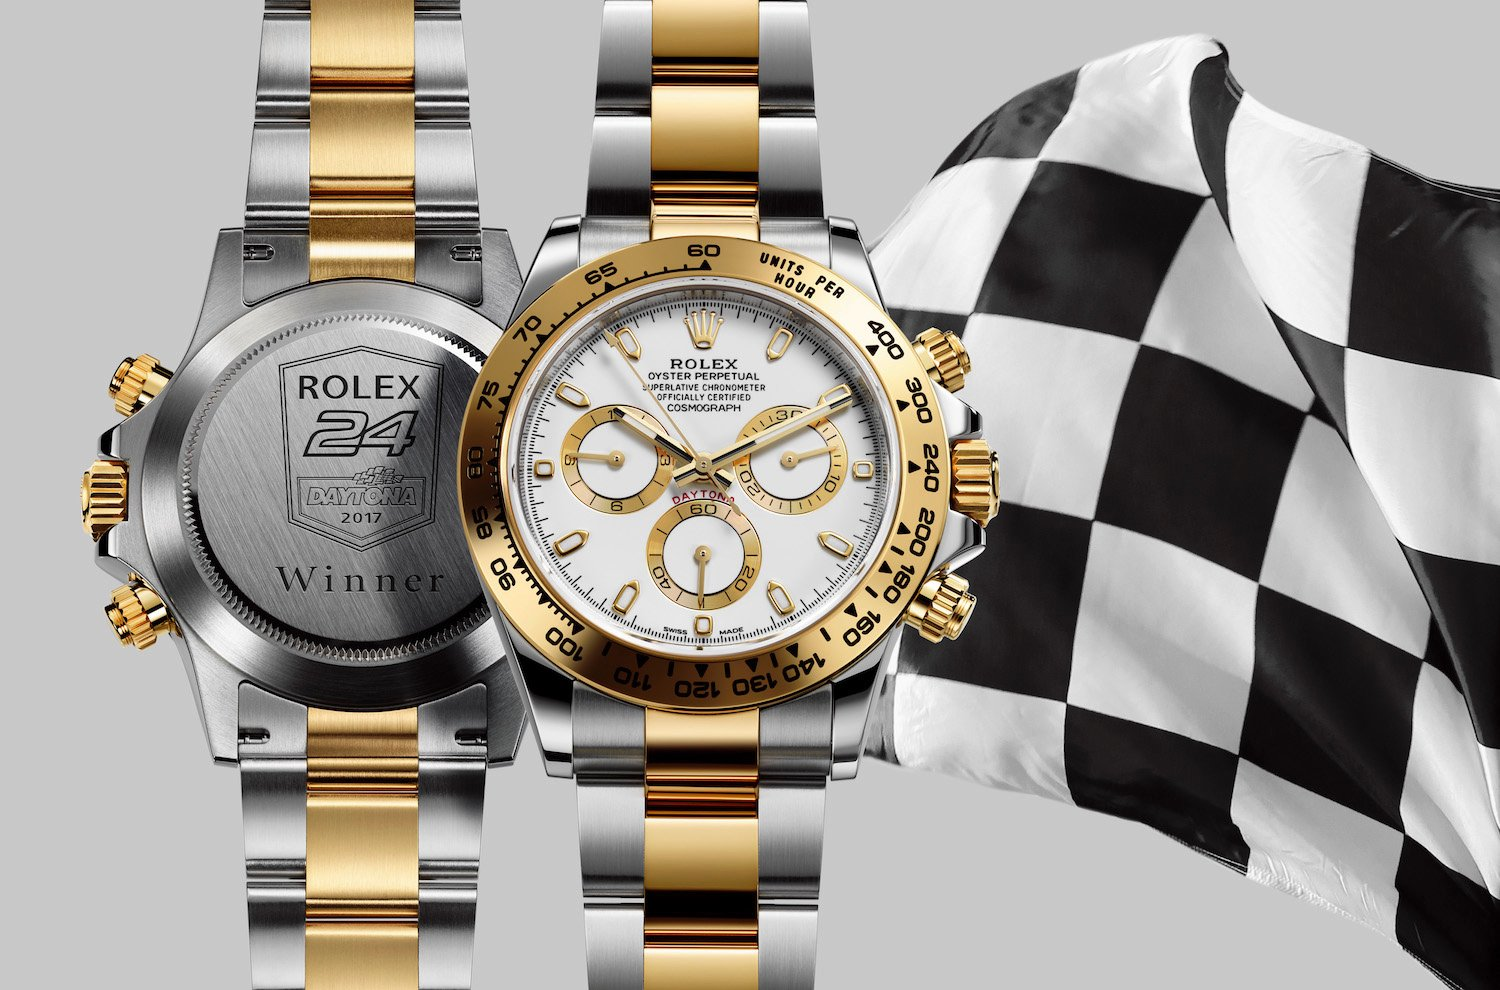 Rolex Daytona comes with a blend of metals.